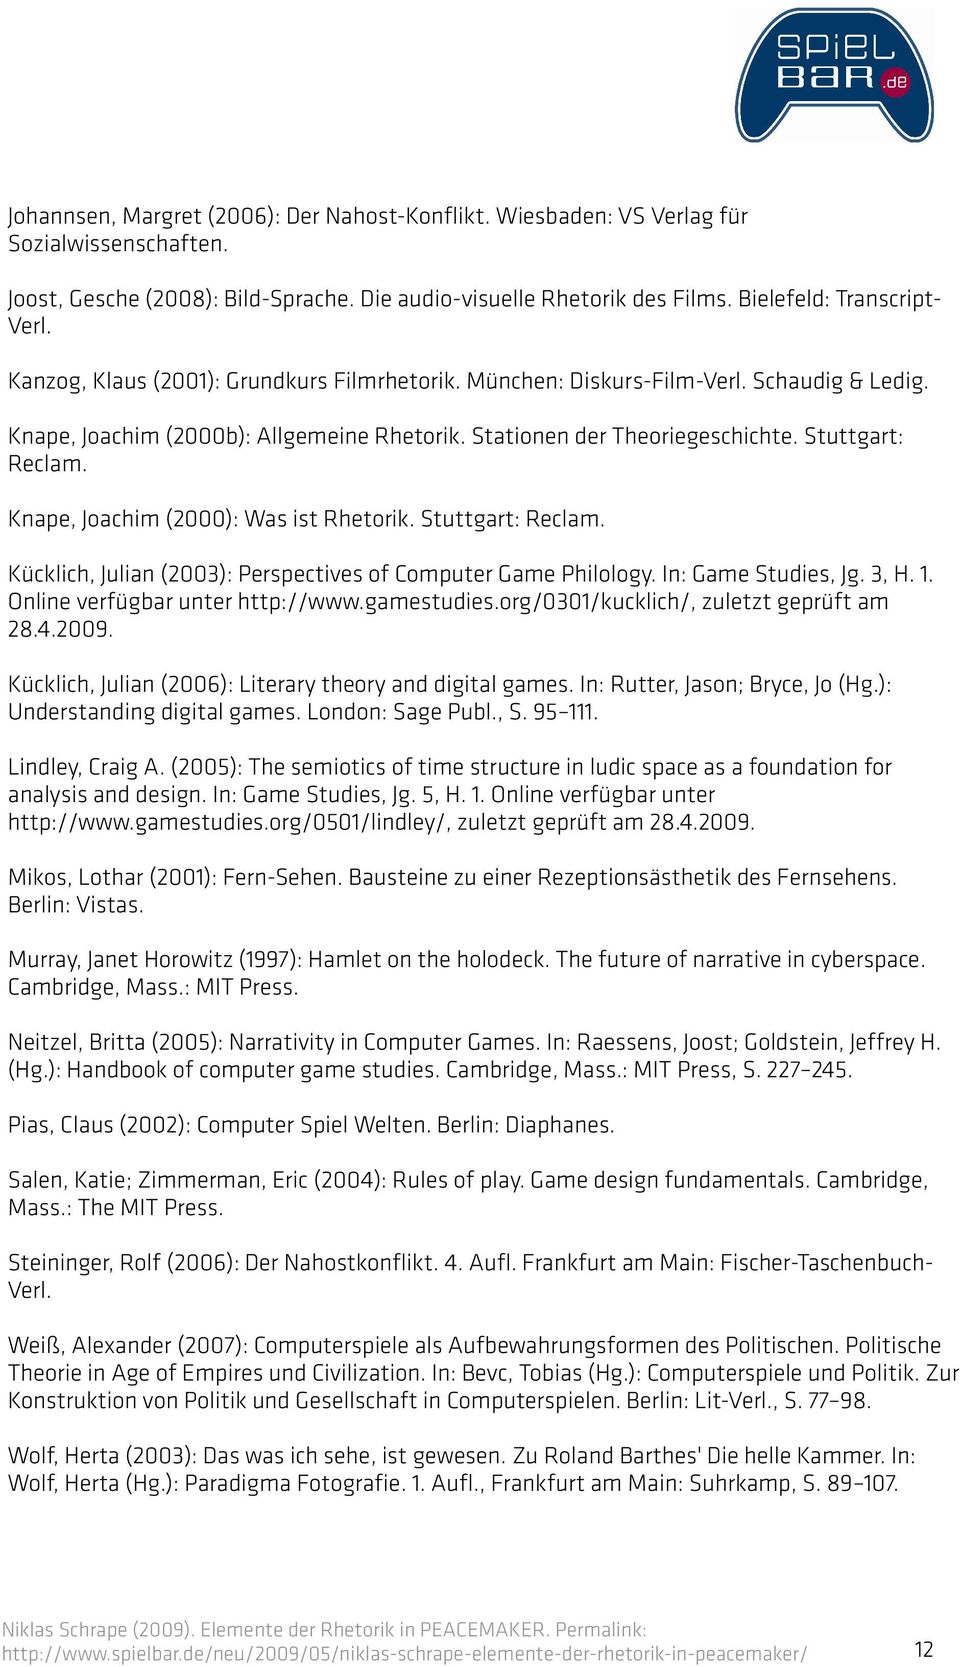 Knape, Joachim (2000): Was ist Rhetorik. Stuttgart: Reclam. Kücklich, Julian (2003): Perspectives of Computer Game Philology. In: Game Studies, Jg. 3, H. 1. Online verfügbar unter http://www.